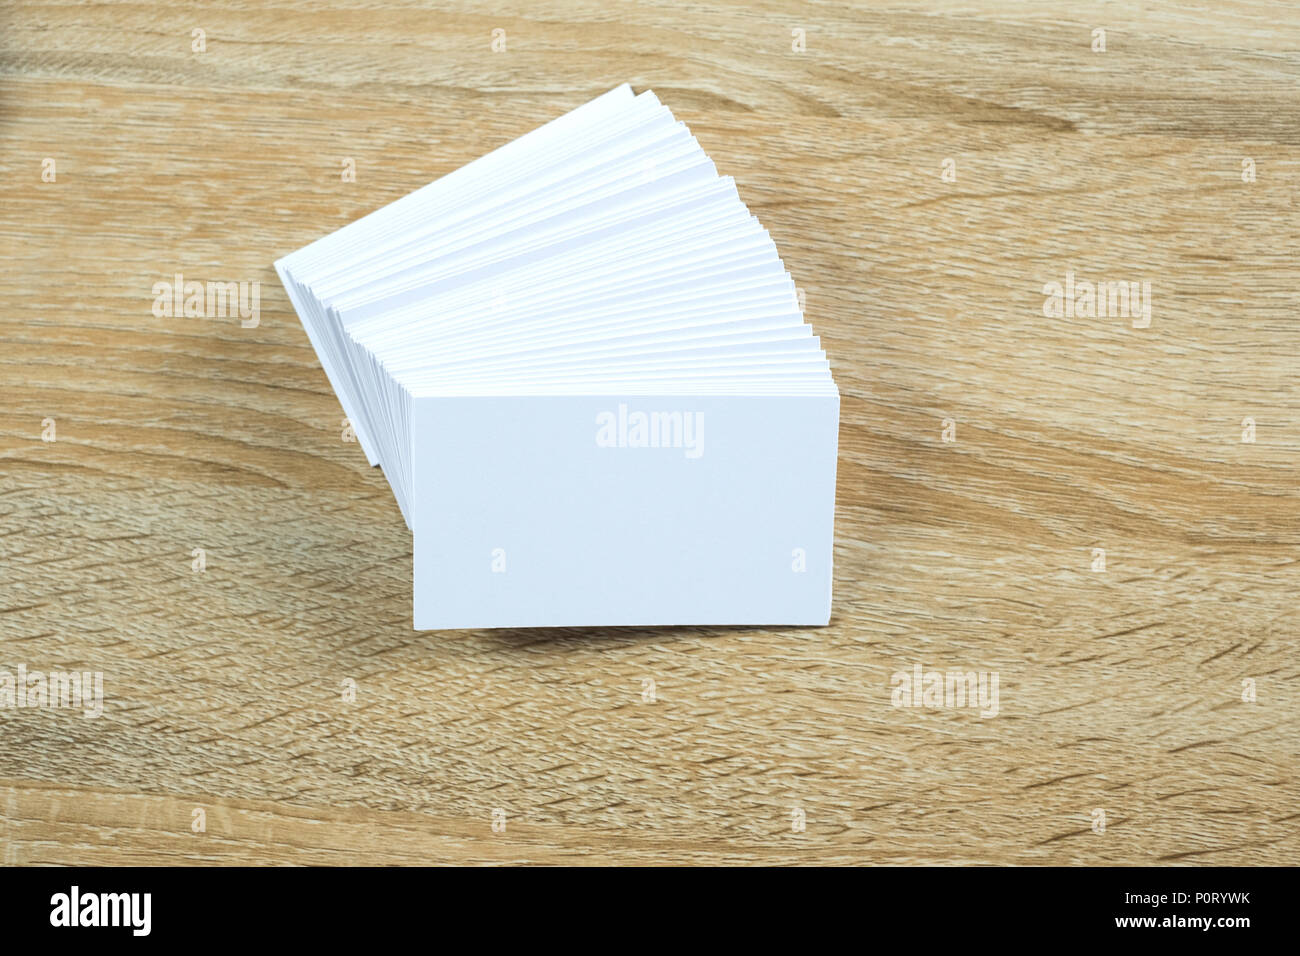 Blank business cards on wooden working table with copy space for add blank business cards on wooden working table with copy space for add text id and logo business company concept idea colourmoves